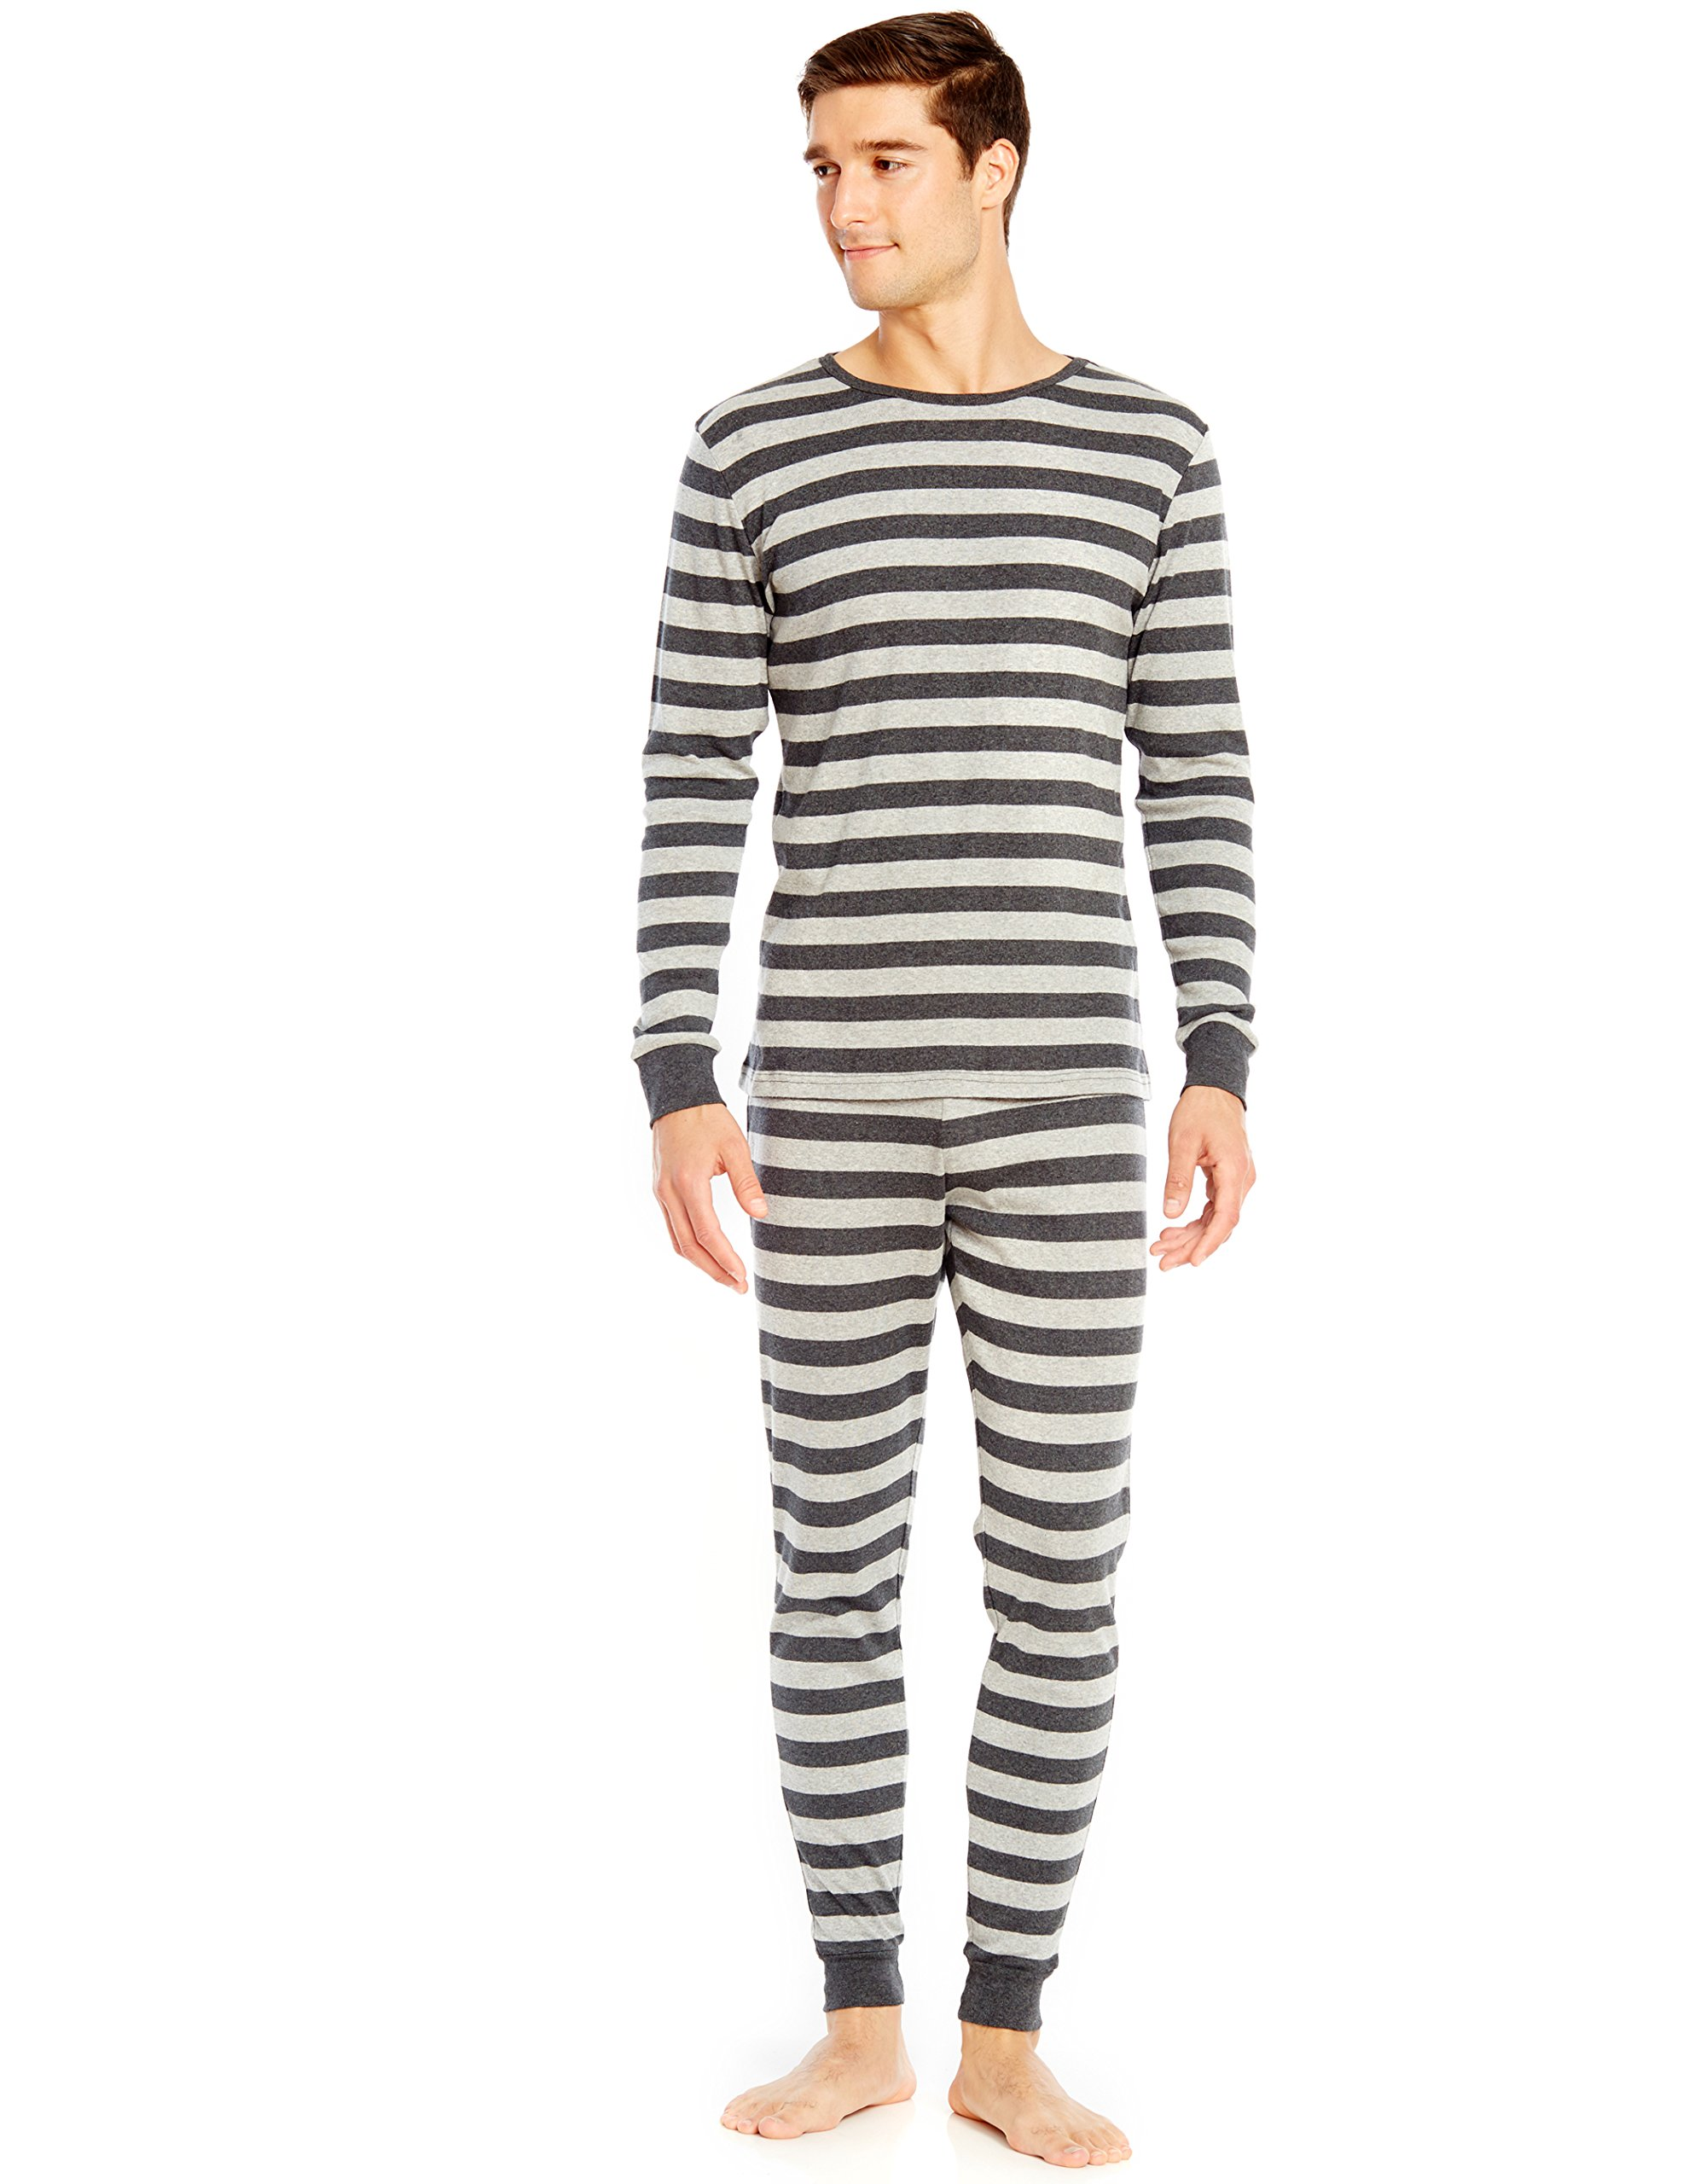 Leveret Mens Light Grey & Dark Grey Striped 2 Piece Pajama Set 100% Cotton Large